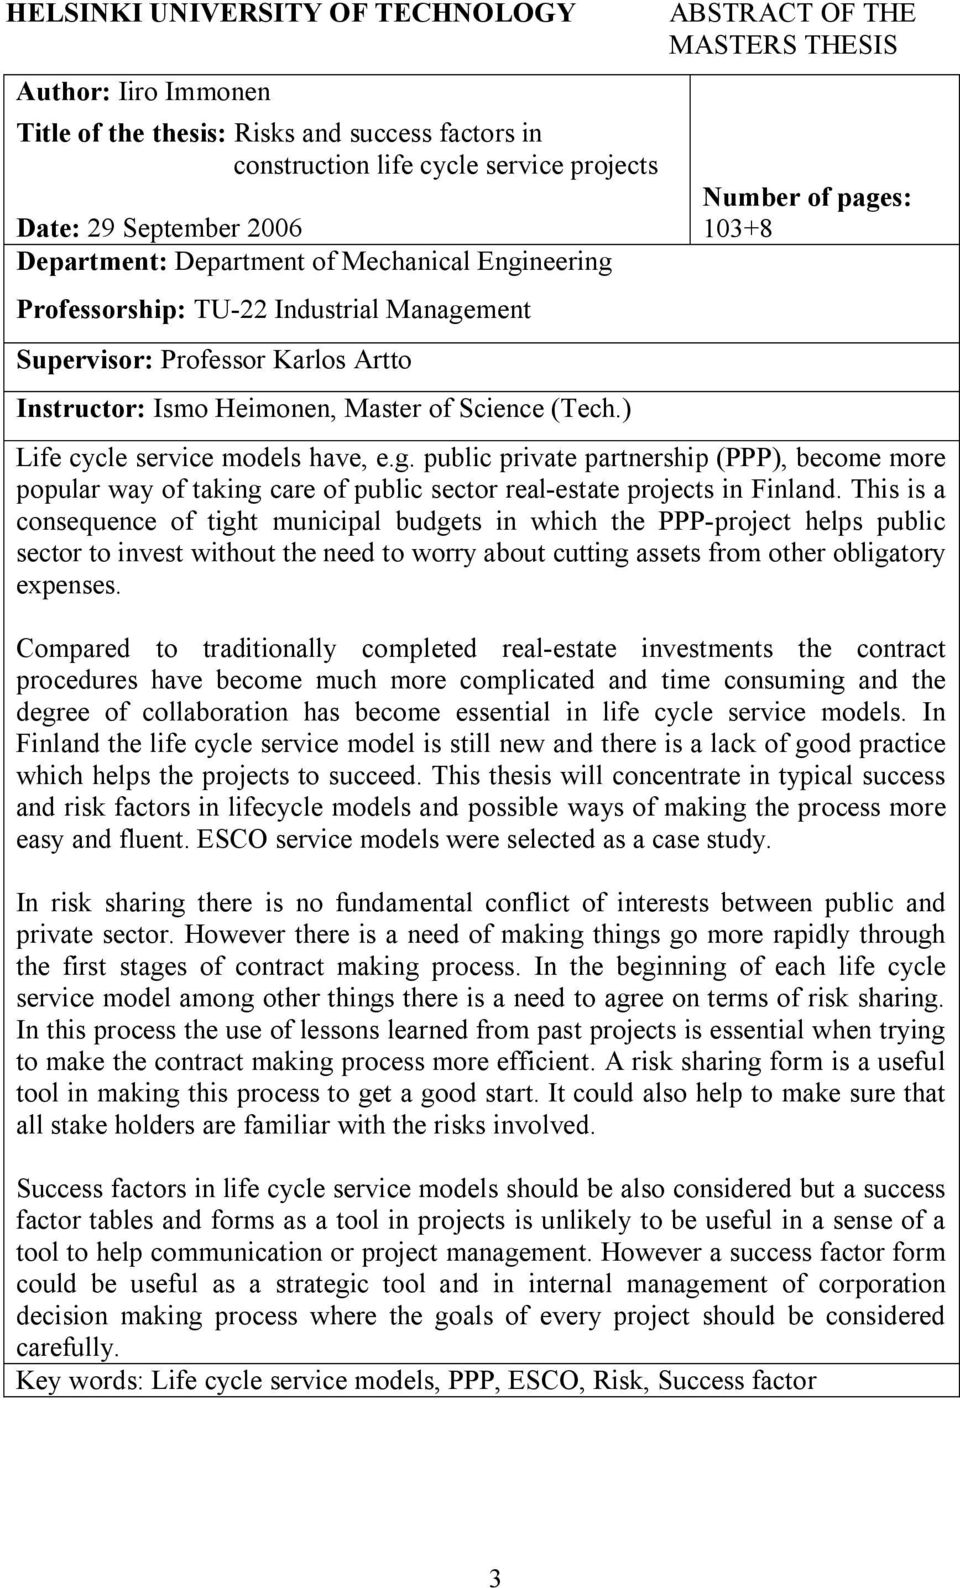 ) ABSTRACT OF THE MASTERS THESIS Number of pages: 103+8 Life cycle service models have, e.g. public private partnership (PPP), become more popular way of taking care of public sector real estate projects in Finland.